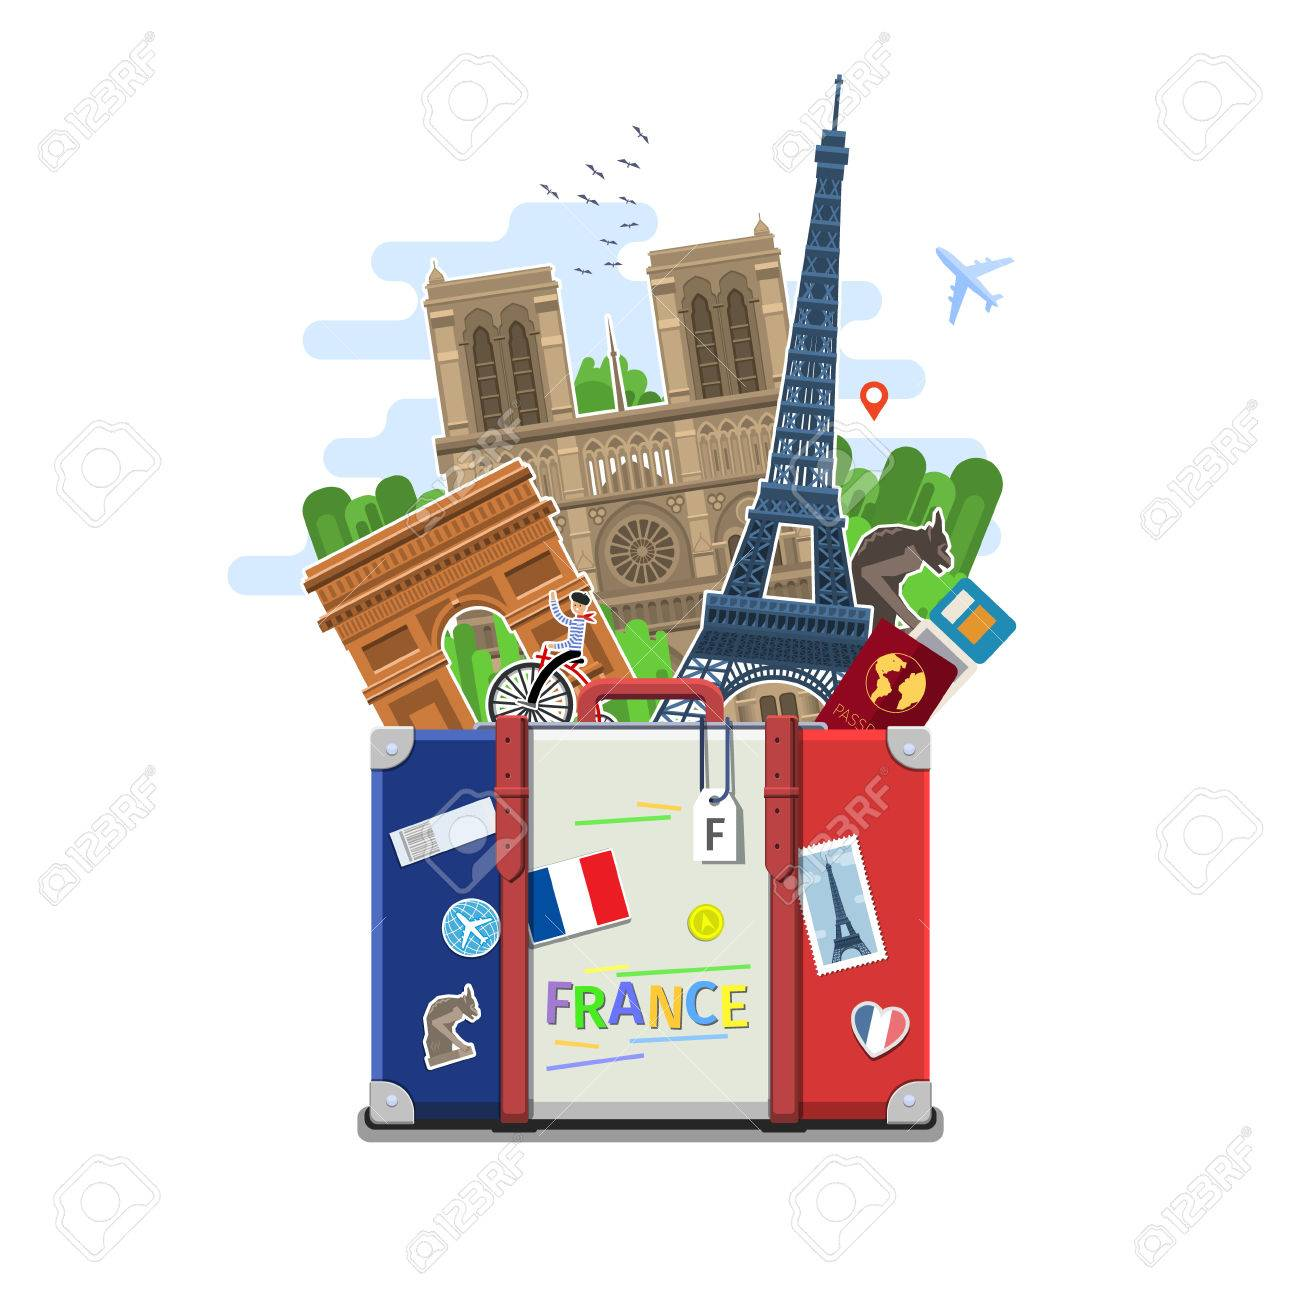 Concept Of Travel To France Or Studying French Flag With Landmarks In Suitcase